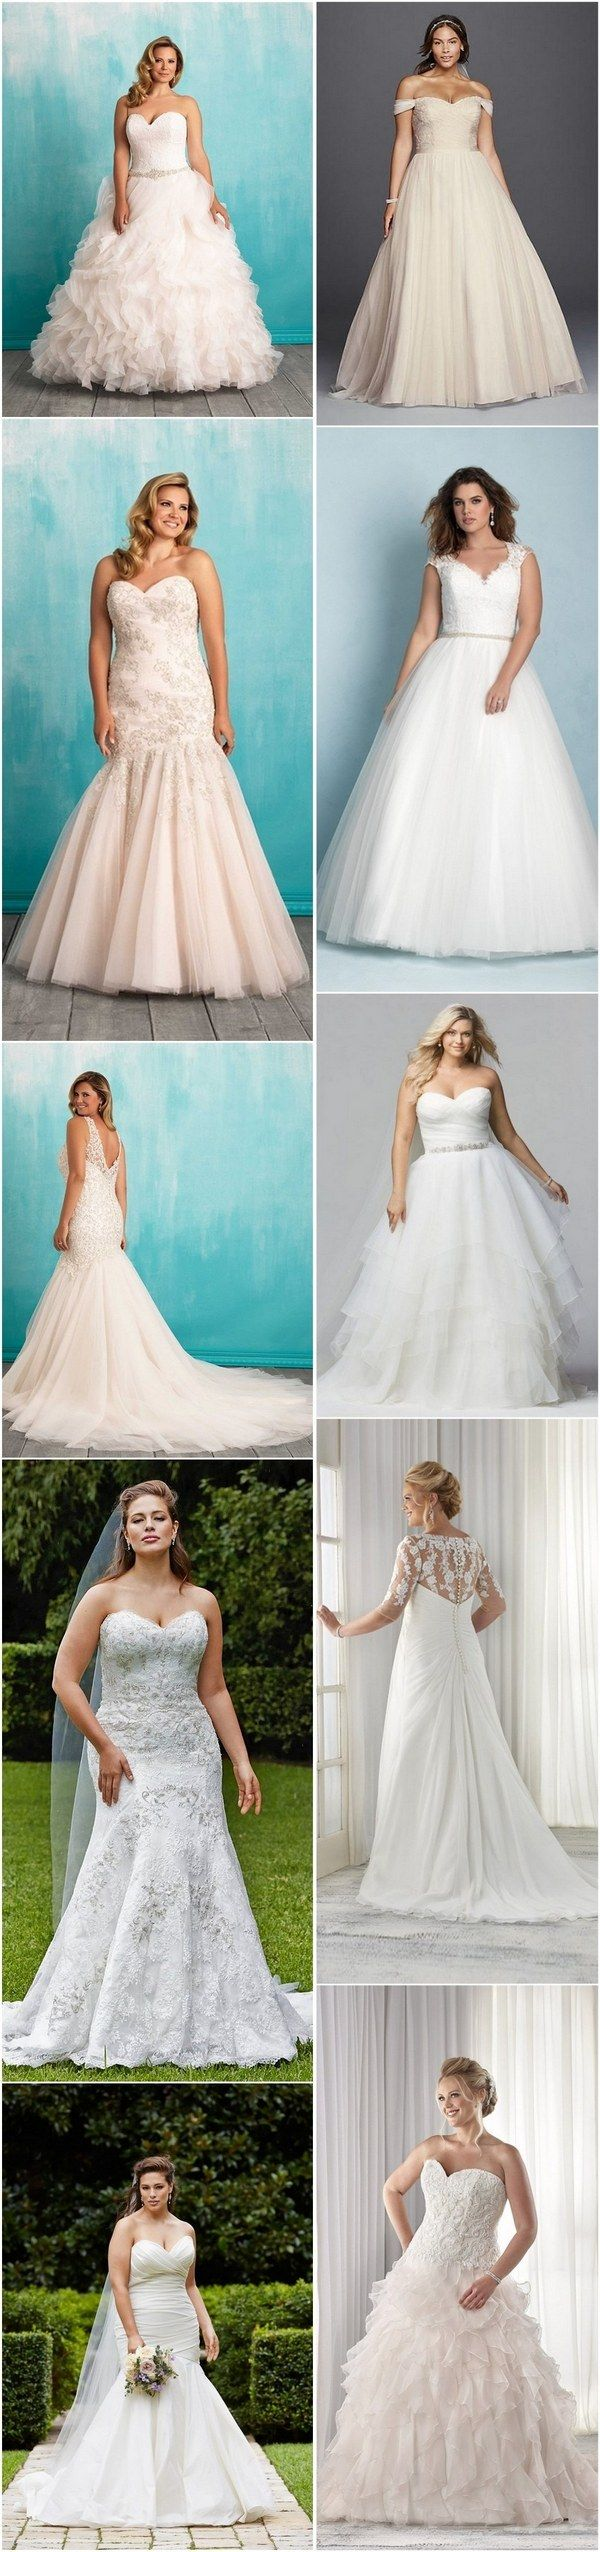 135 best Wedding Dresses images on Pinterest | Wedding dressses ...